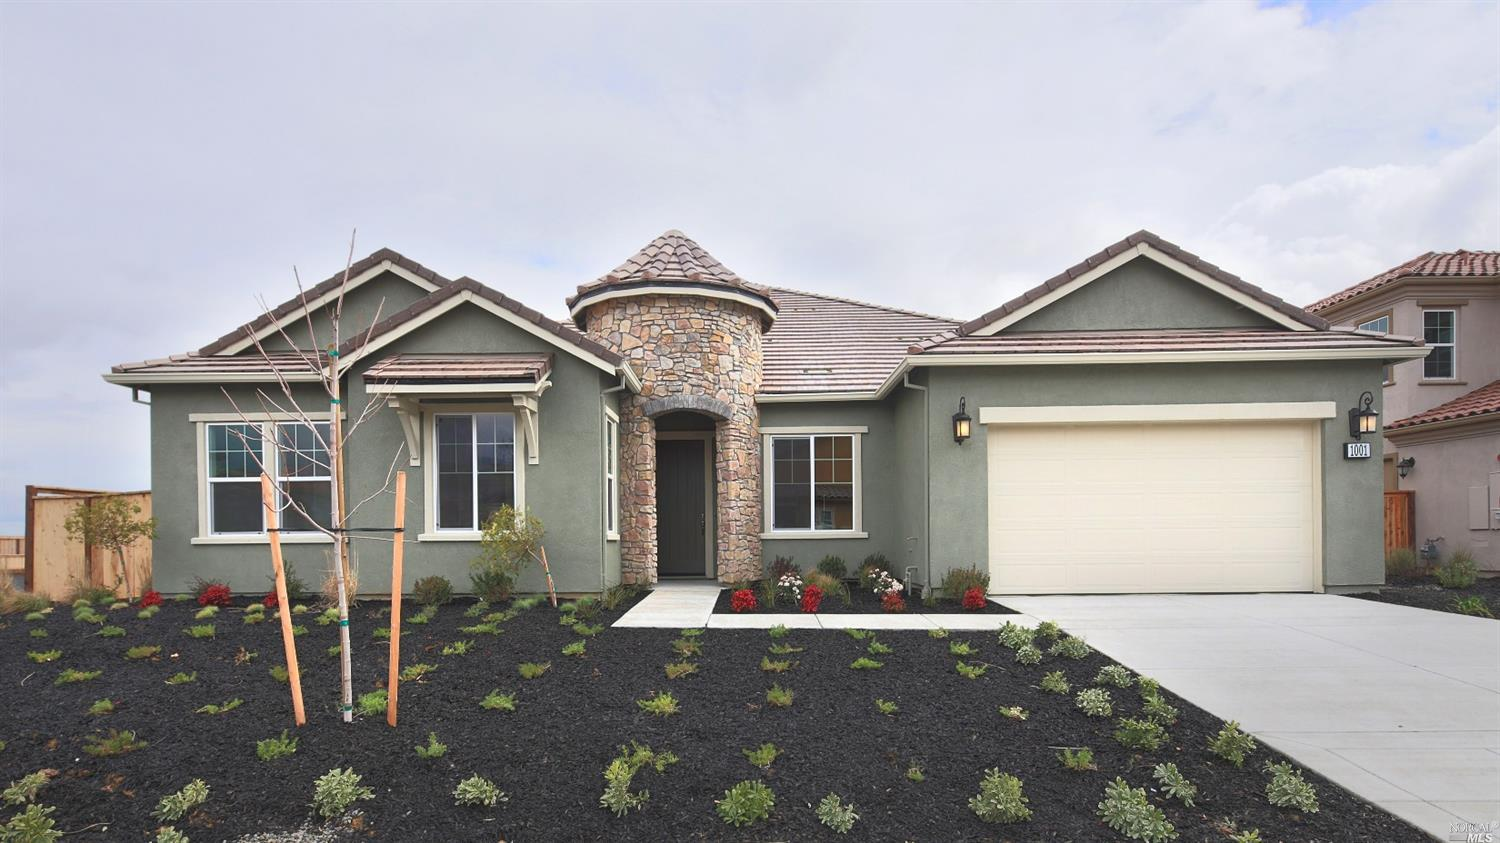 1001 Green Leaf Ct, Vacaville, CA 95688